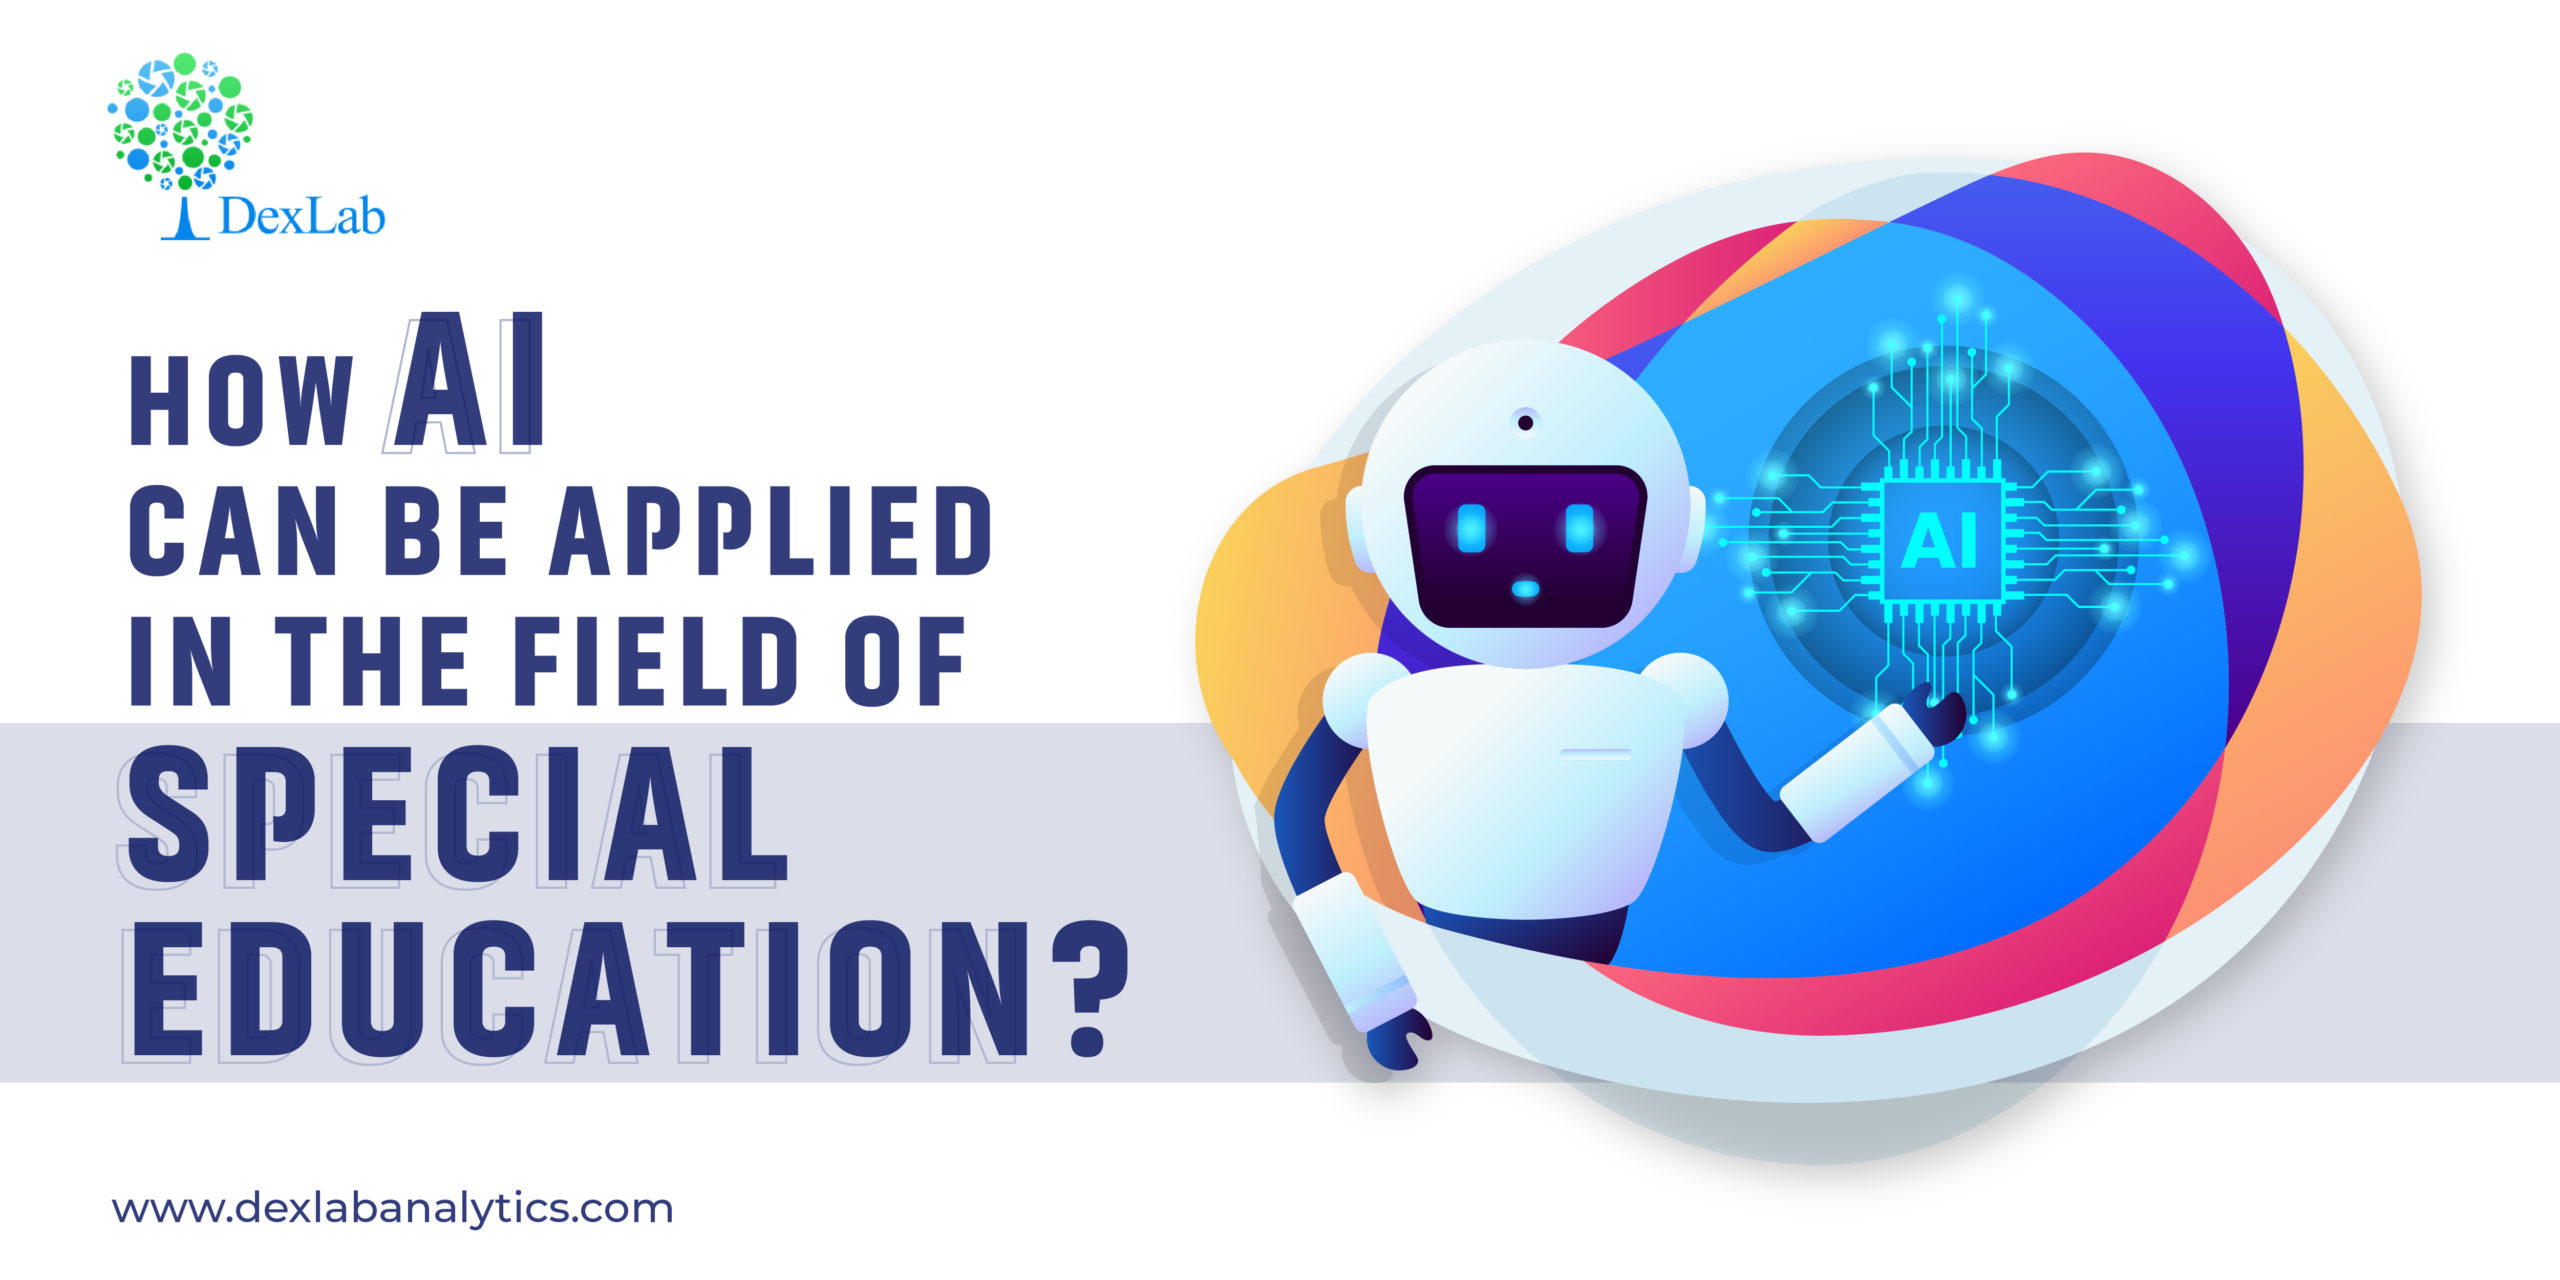 How AI Can Be Applied in the Field of Special Education?